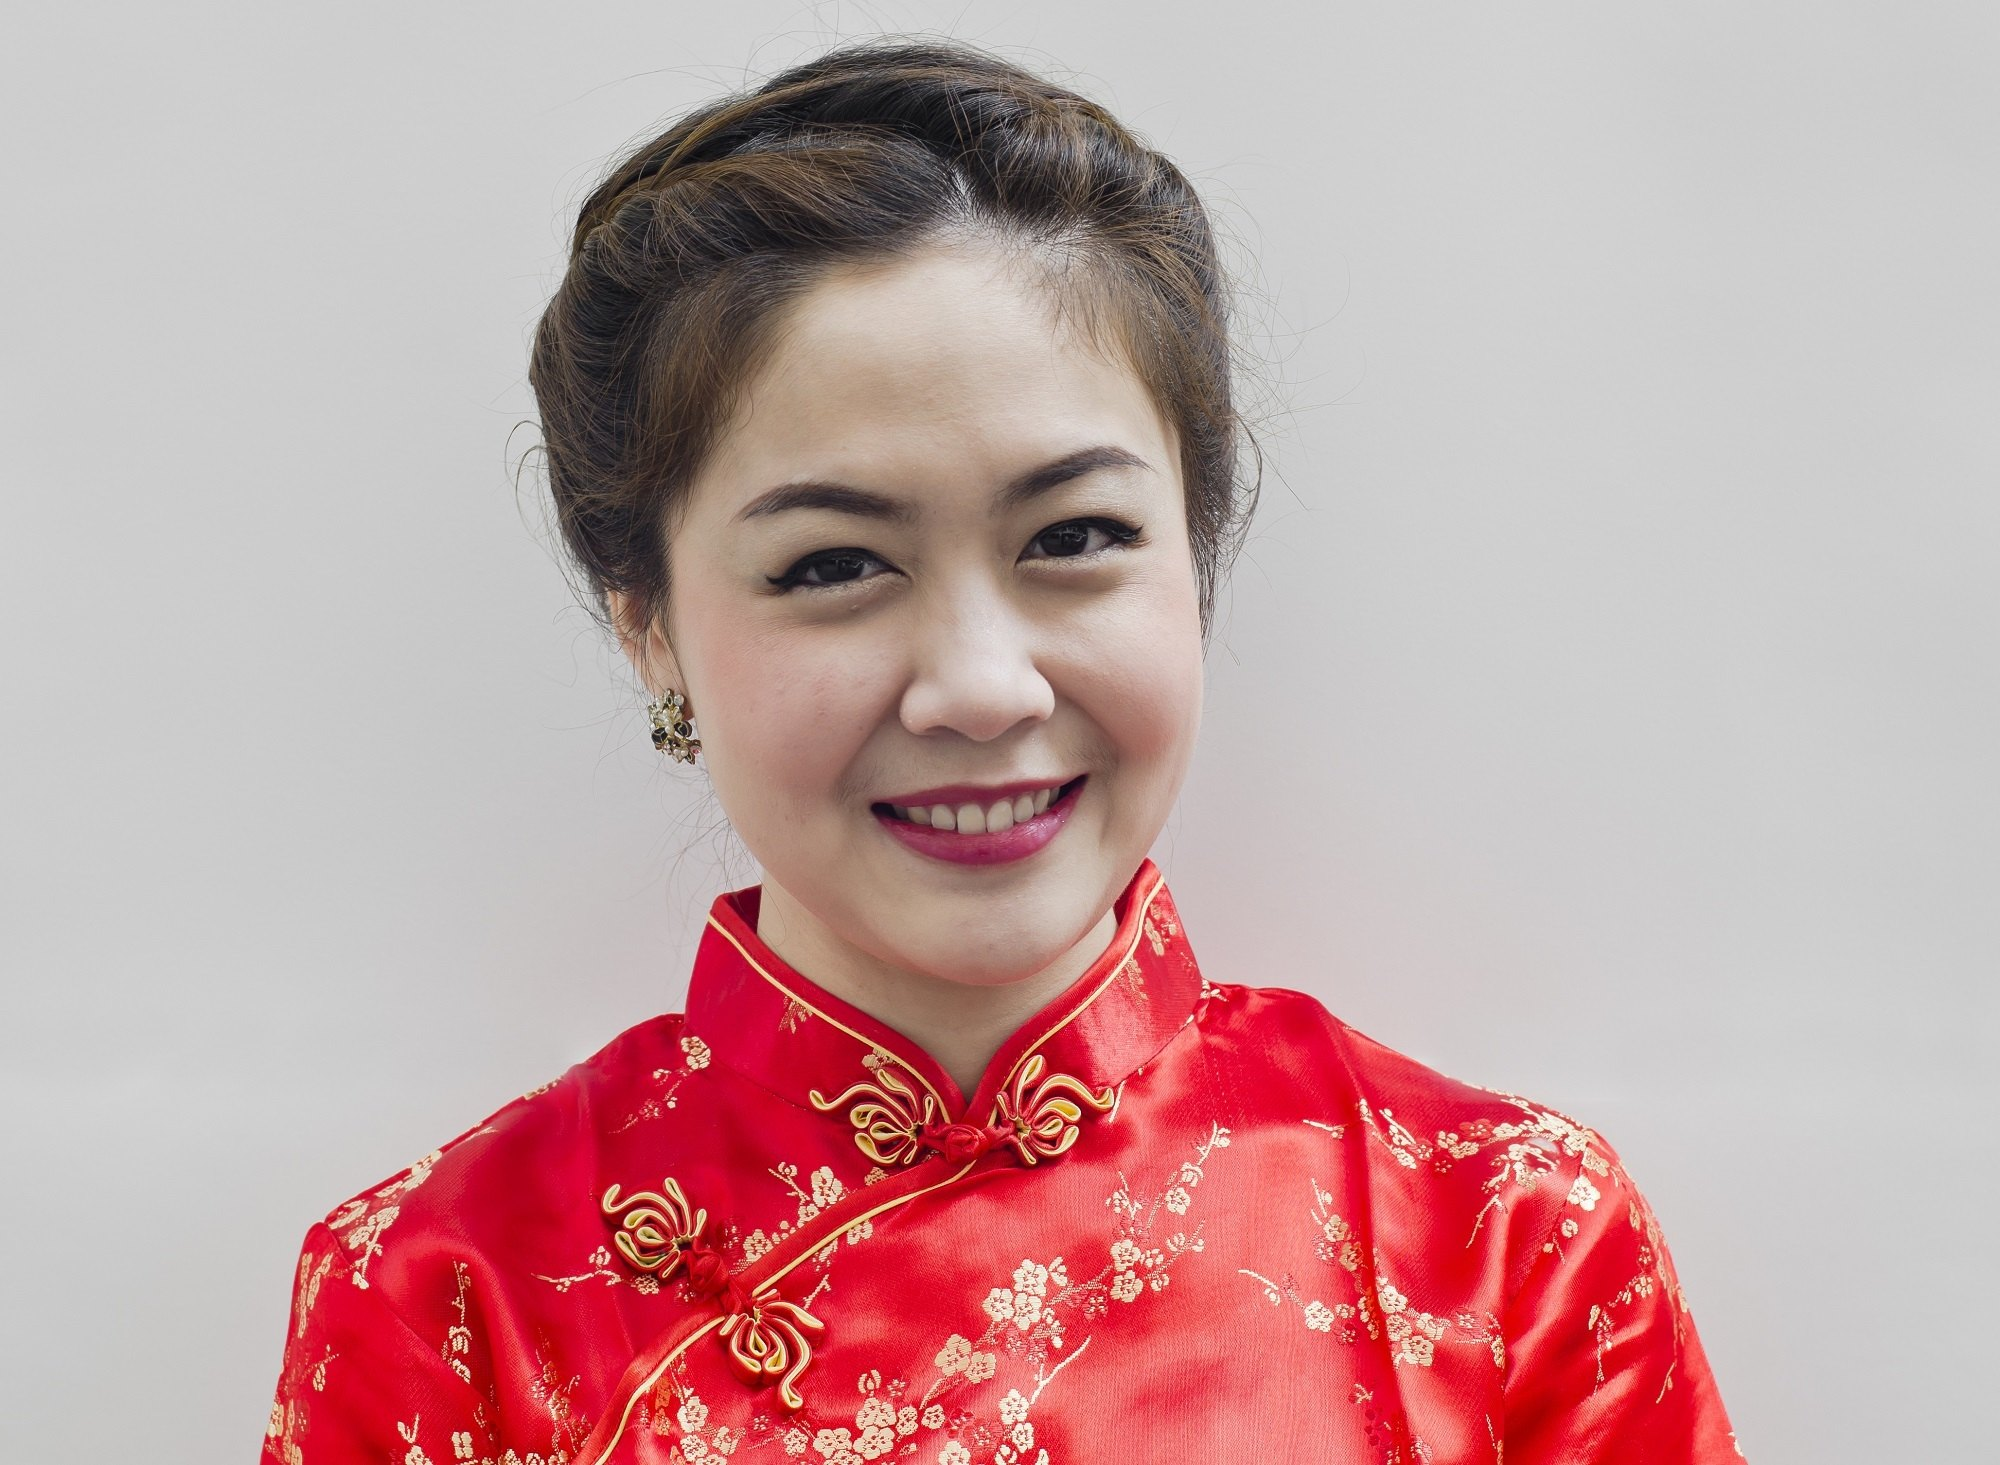 Chinese hairstyles: Closeup shot of an Asian woman wearing a red dress with dark hair in an updo